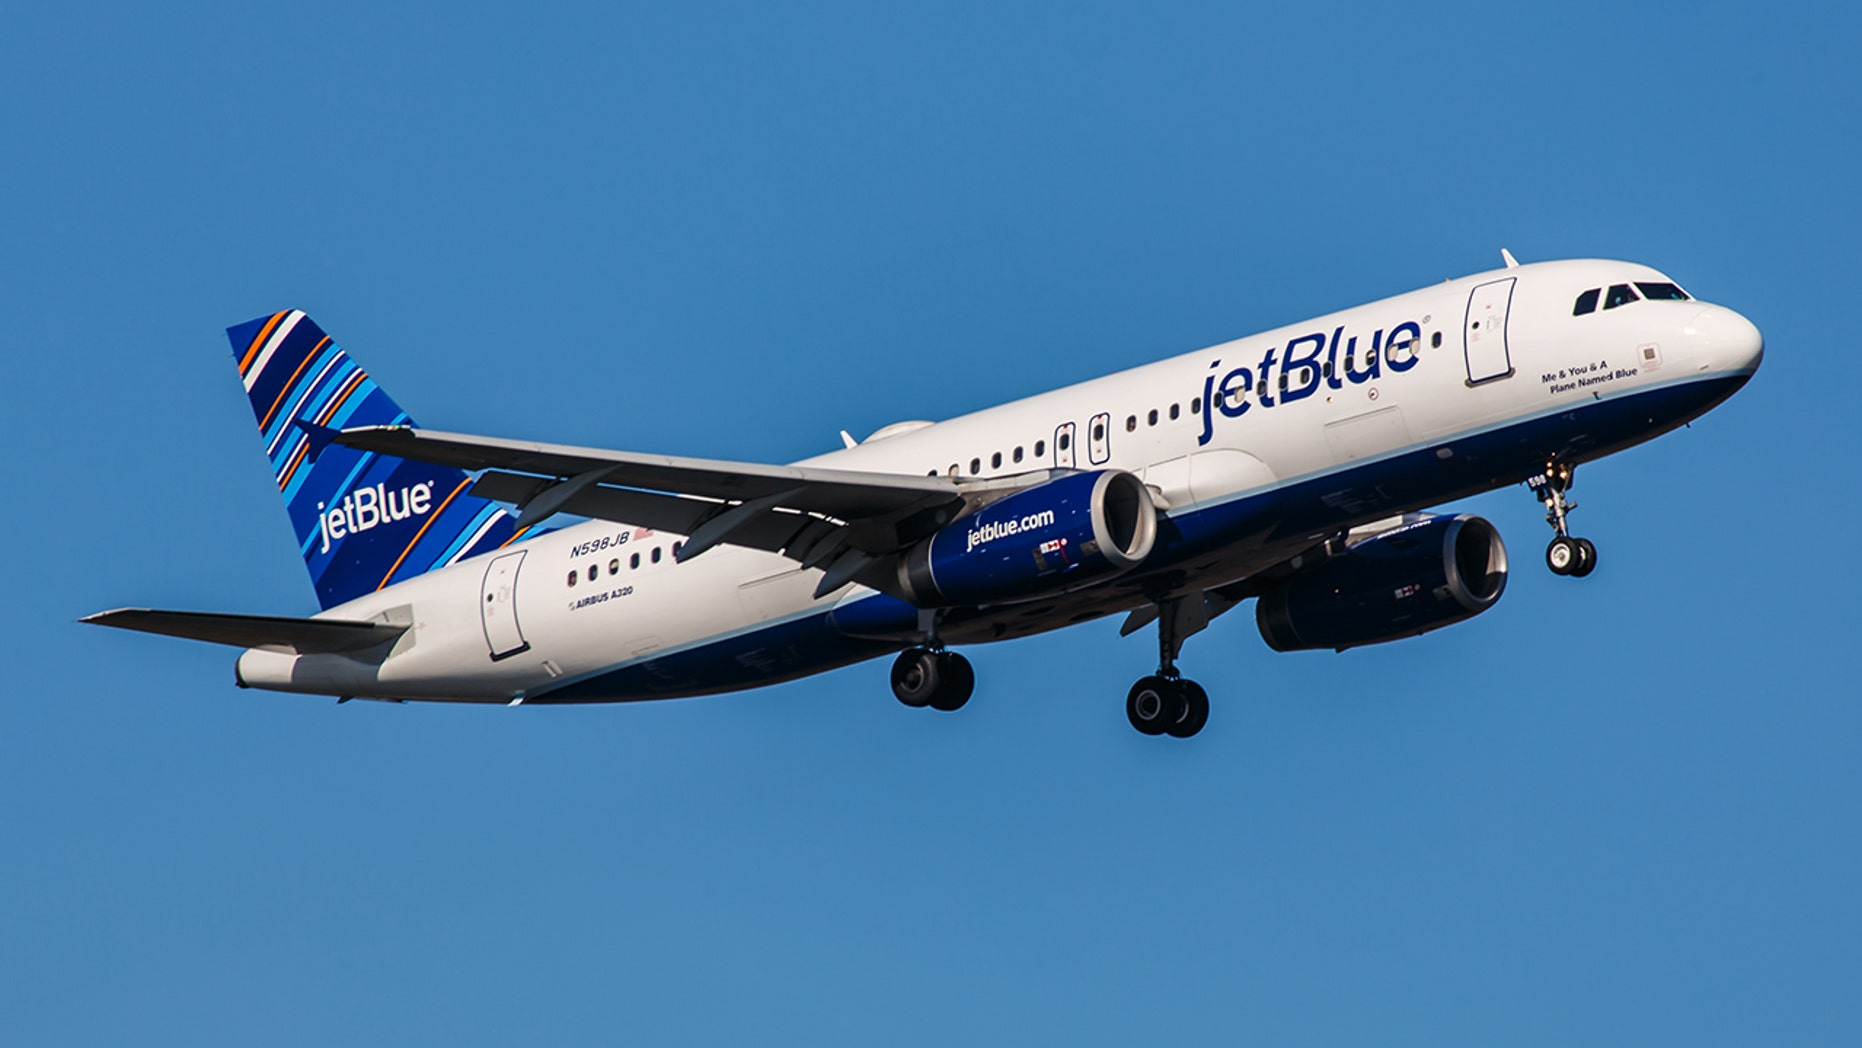 JetBlue is offering those who are willing to wipe their Instagram slate clean a chance at free flights for a year.